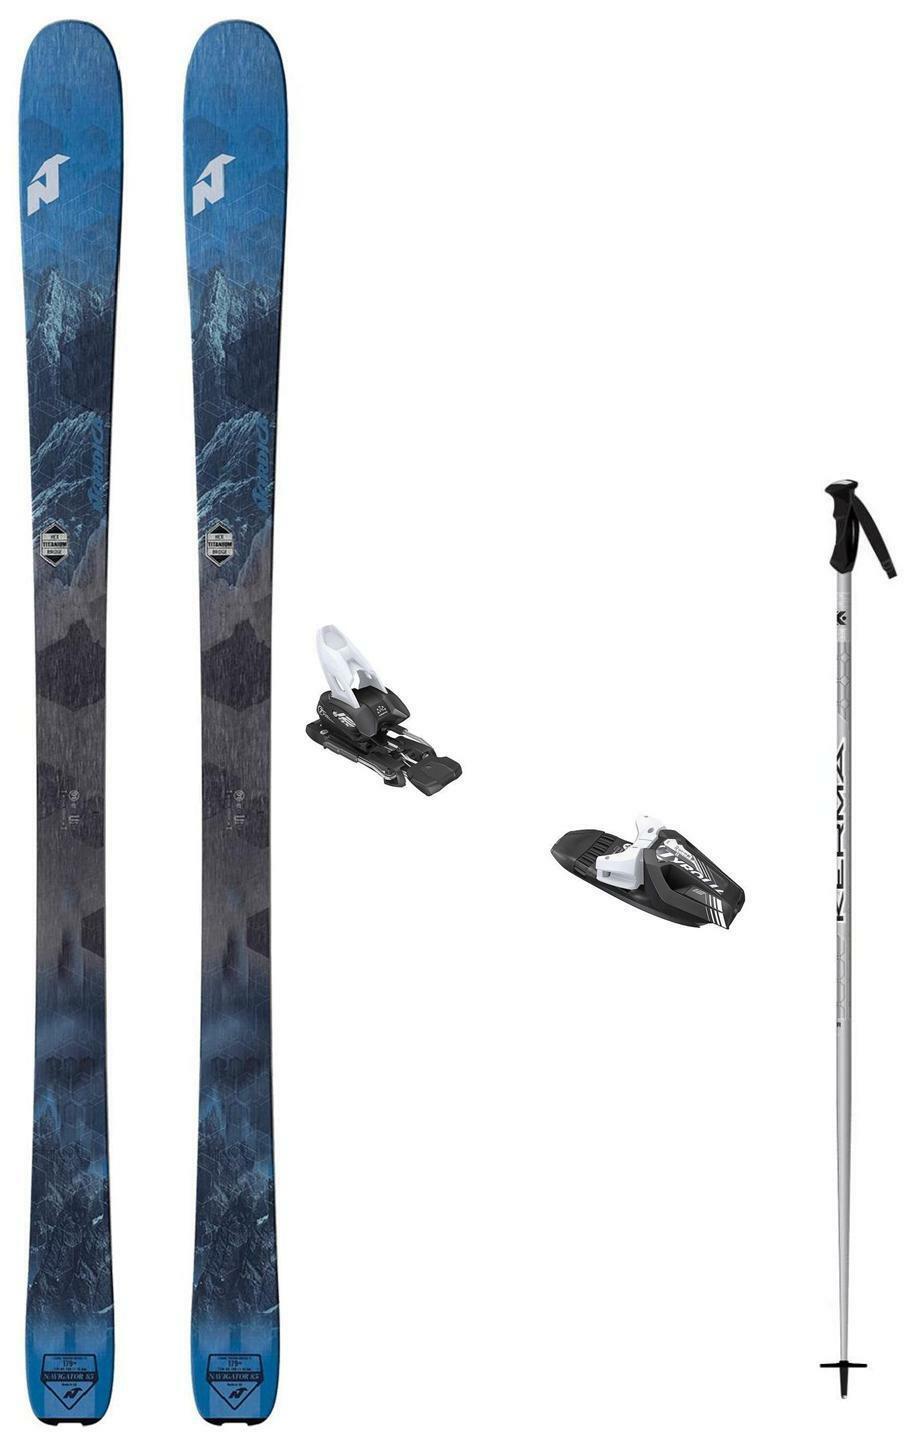 2019 Nordica Navigator 85 snow skis 165cm w-Binding (poles incl  at BuyItNow) NEW  sale outlet